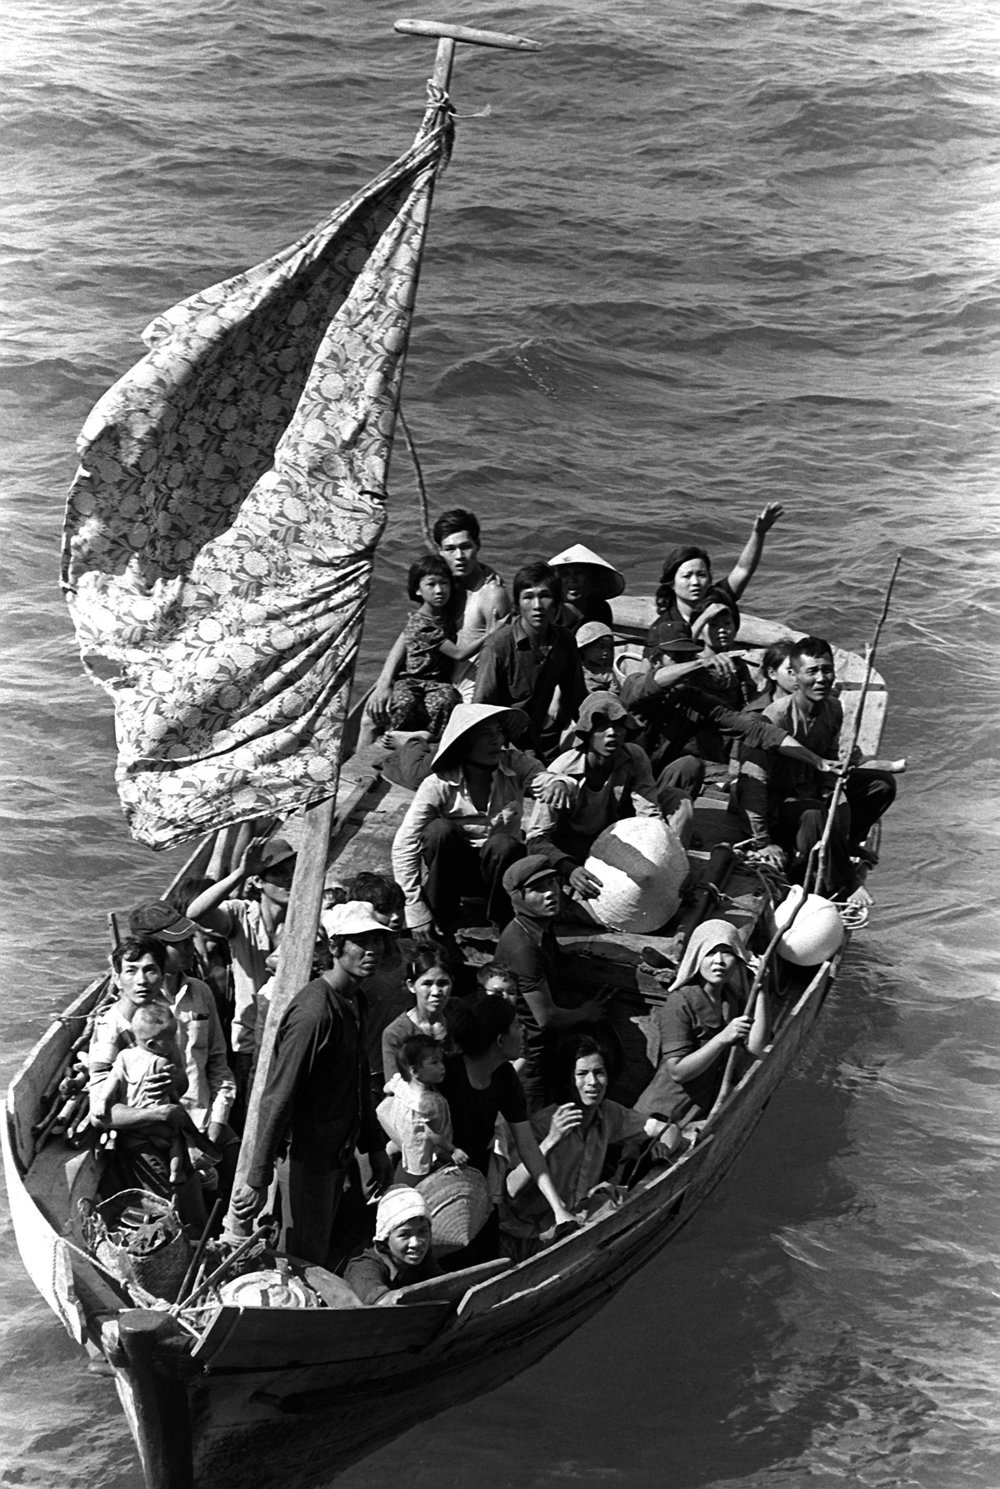 Copy of vietnamese-refugees-fleeing-vietnam-1984-vietnam-war.jpg